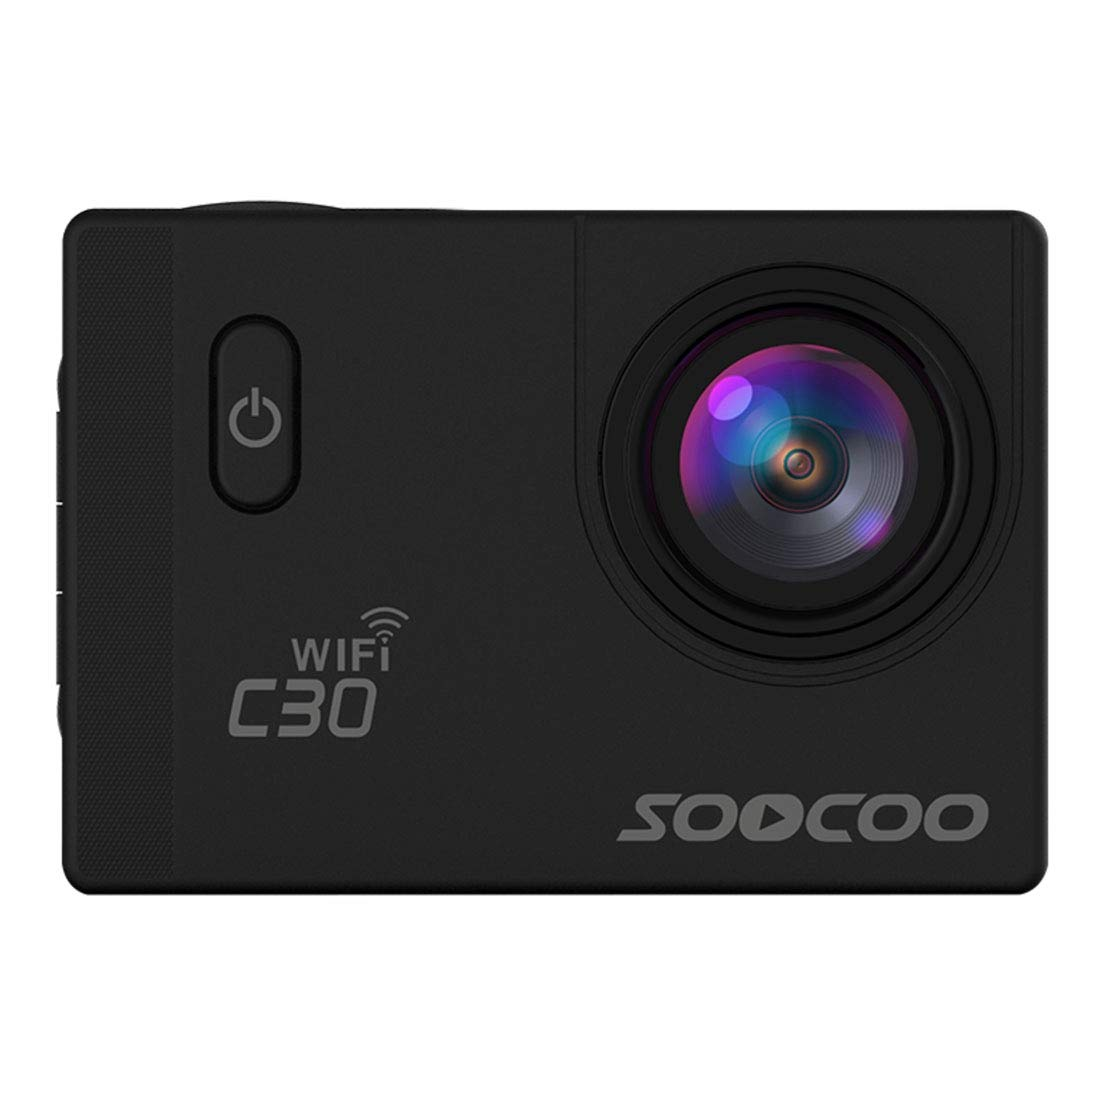 Underwater Photography Sports Camcorders, SOOCOO C30 2.0 inch Screen 4K 170 Degrees Wide Angle WiFi Sport Action Camera Camcorder with Waterproof Housing Case, Support 64GB Micro SD Card, Diving Red L by Cqu